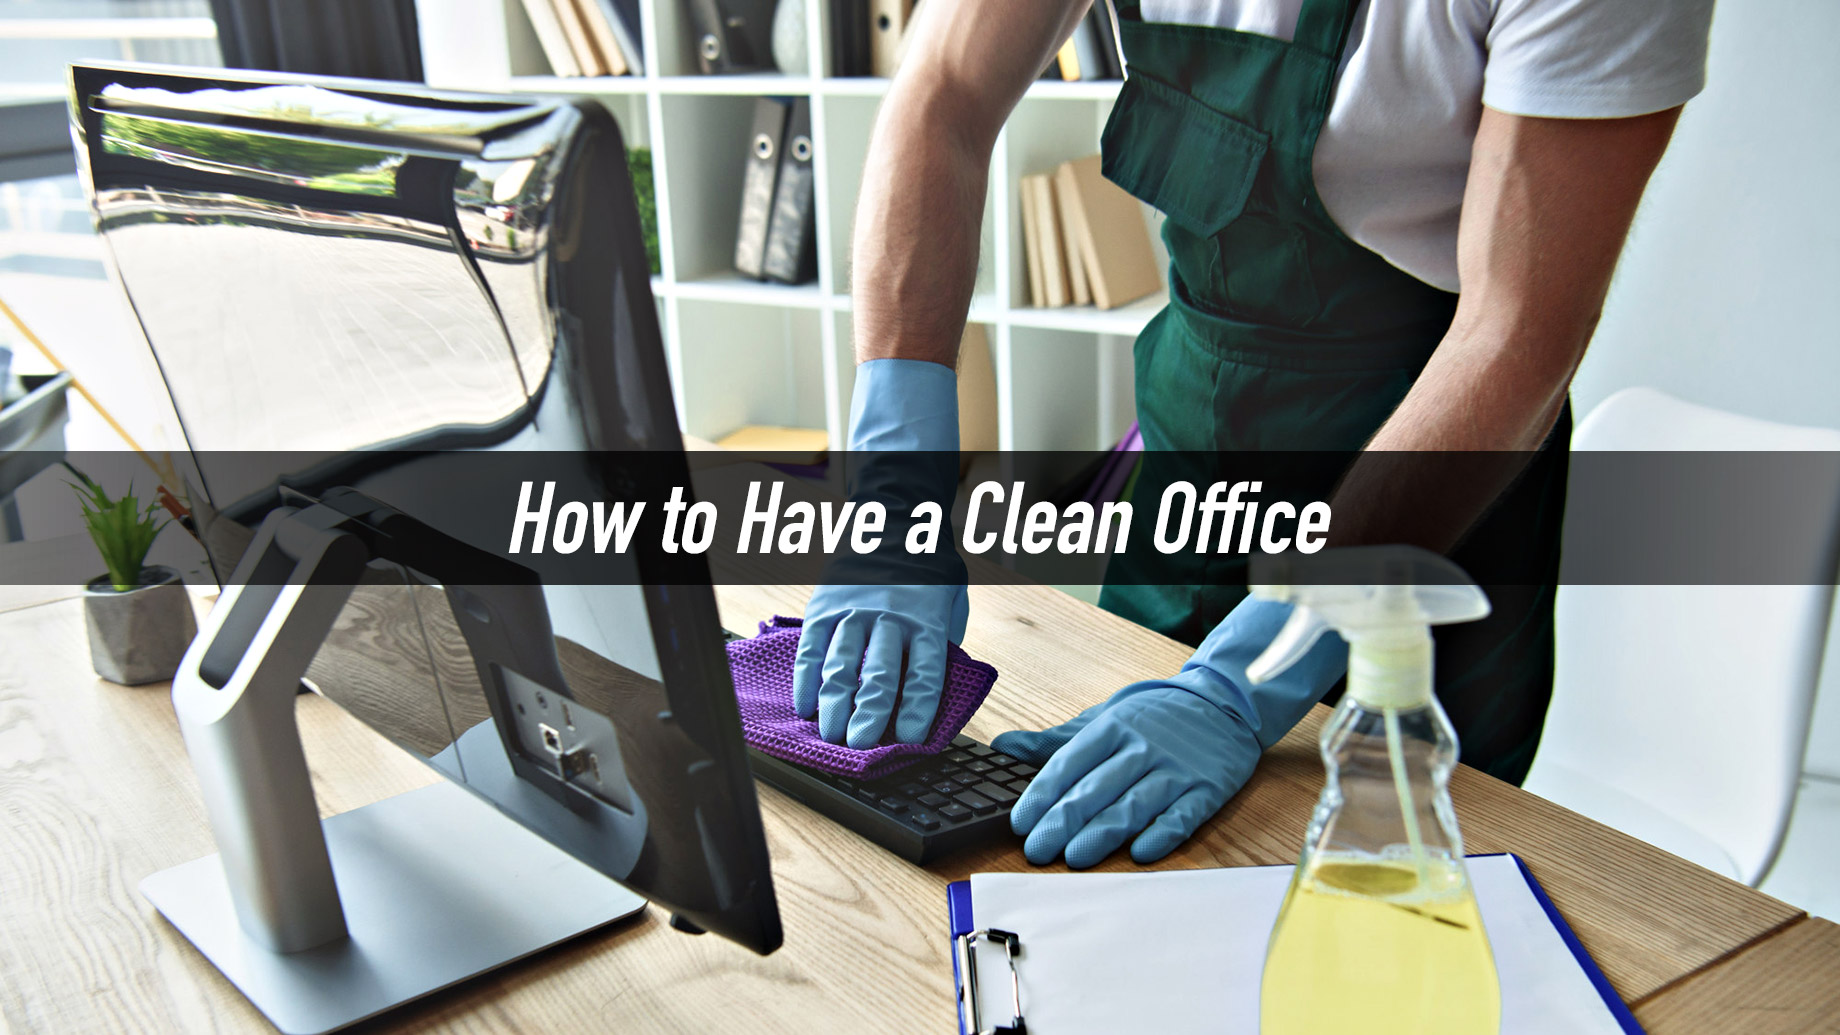 How to Have a Clean Office - A Simple Guide